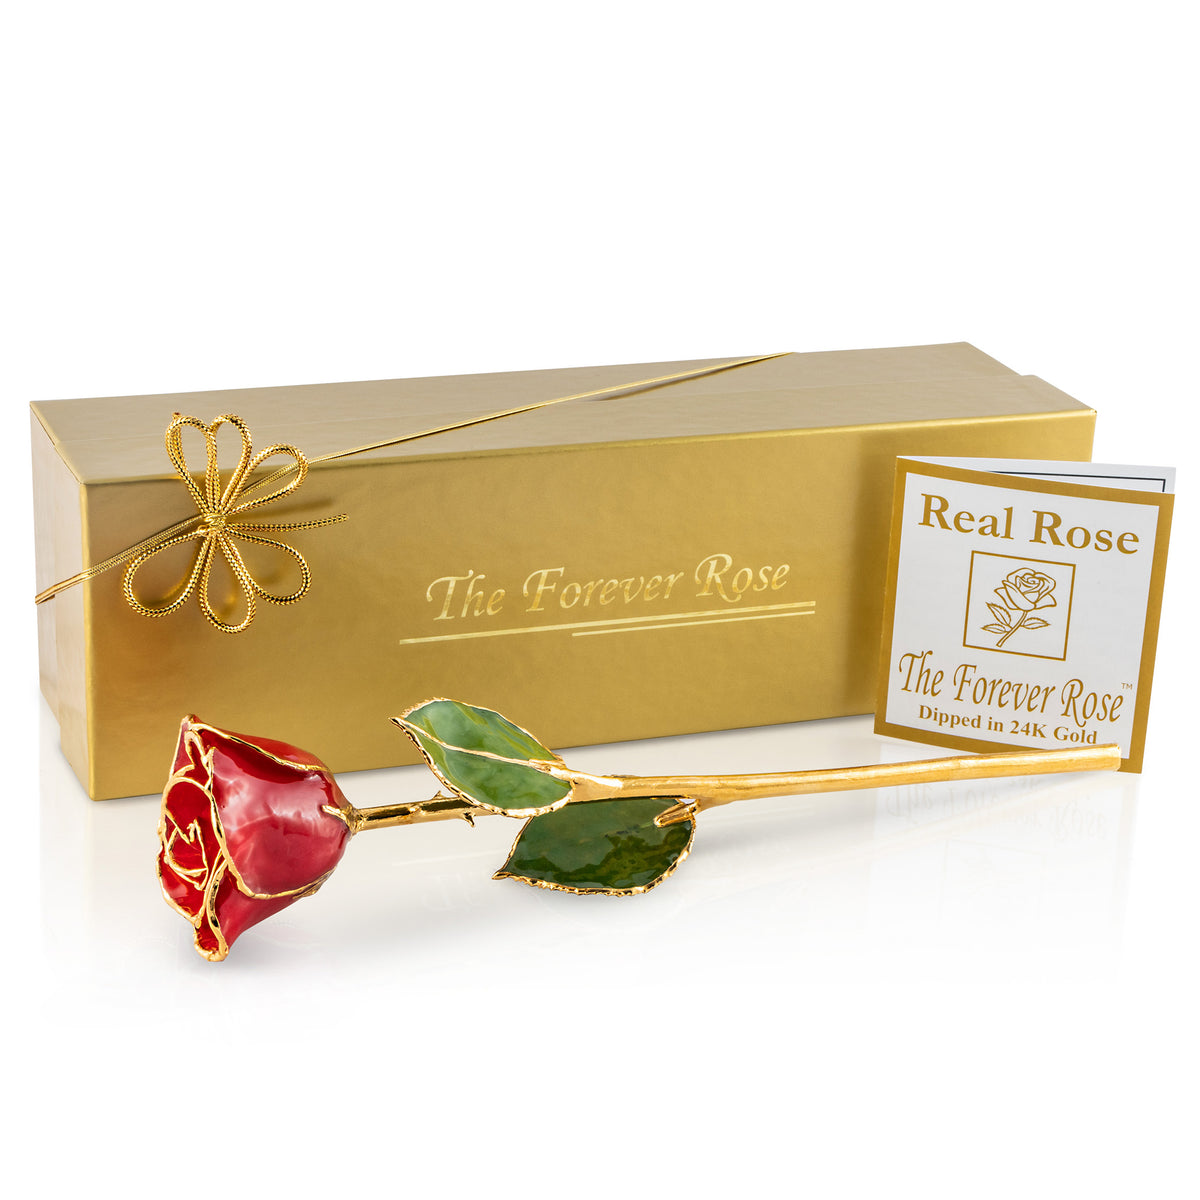 24K Gold Trimmed Forever Rose with Red Petals. View of Stem, Leaves, and Rose Petals and Showing Detail of Gold Trim Shown with Gold Gift box and certificate of authenticity